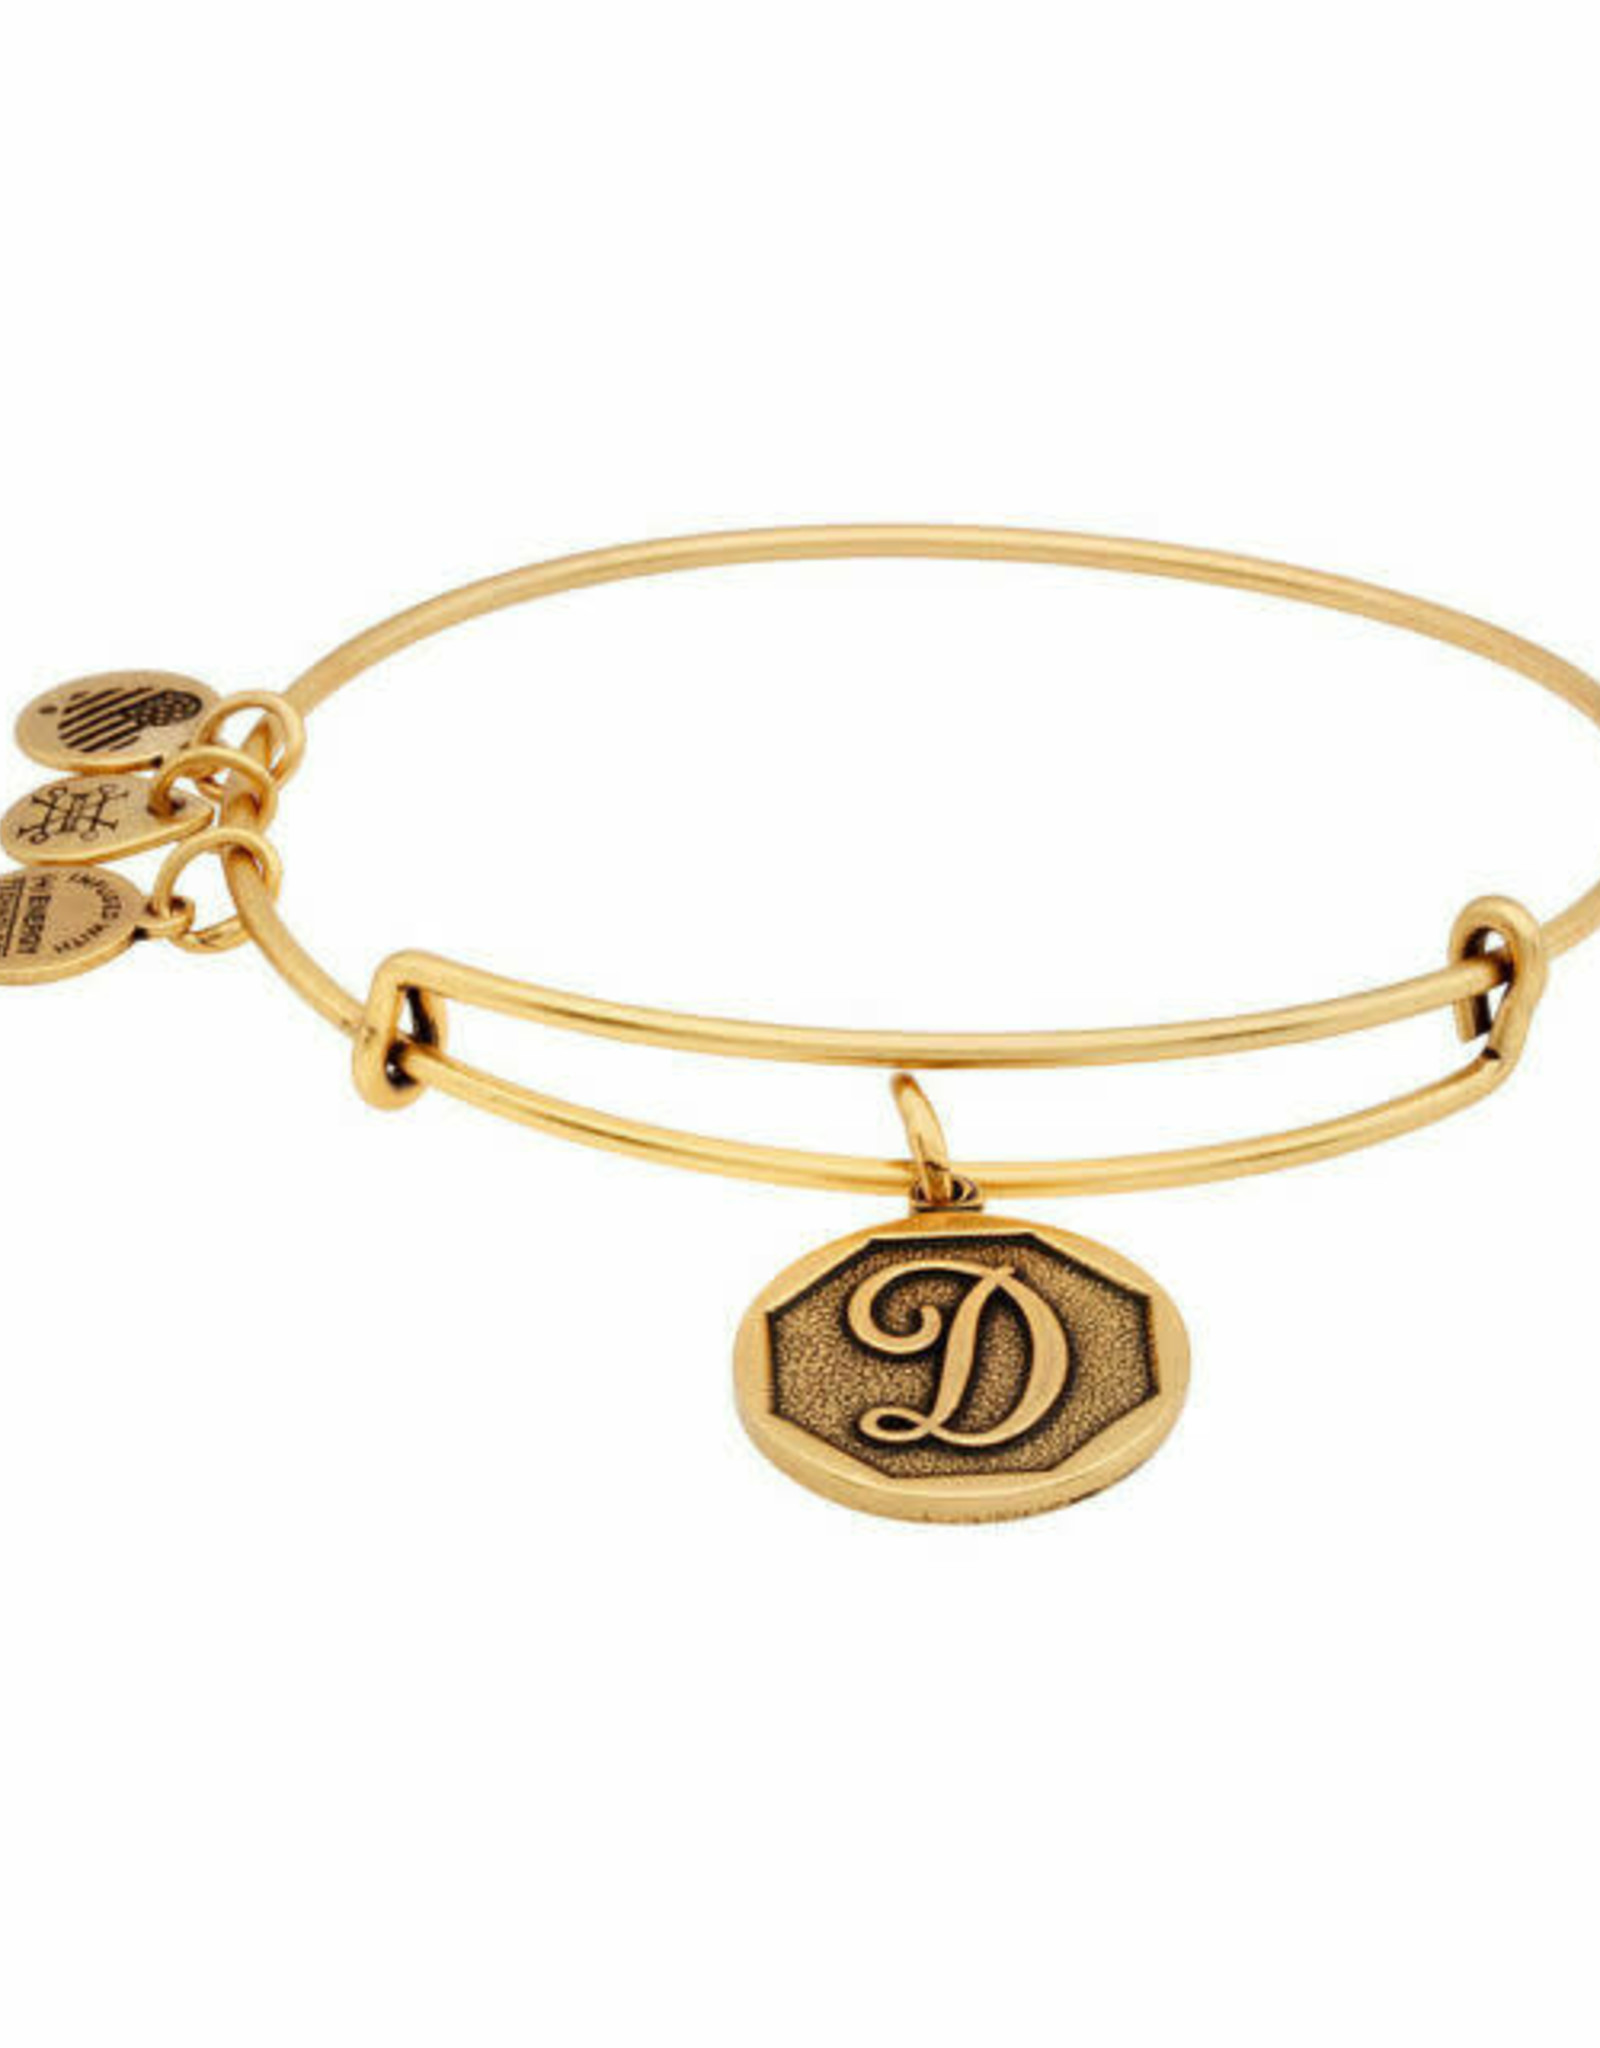 Alex and Ani Alex And Ani, Initial D FINAL SALE